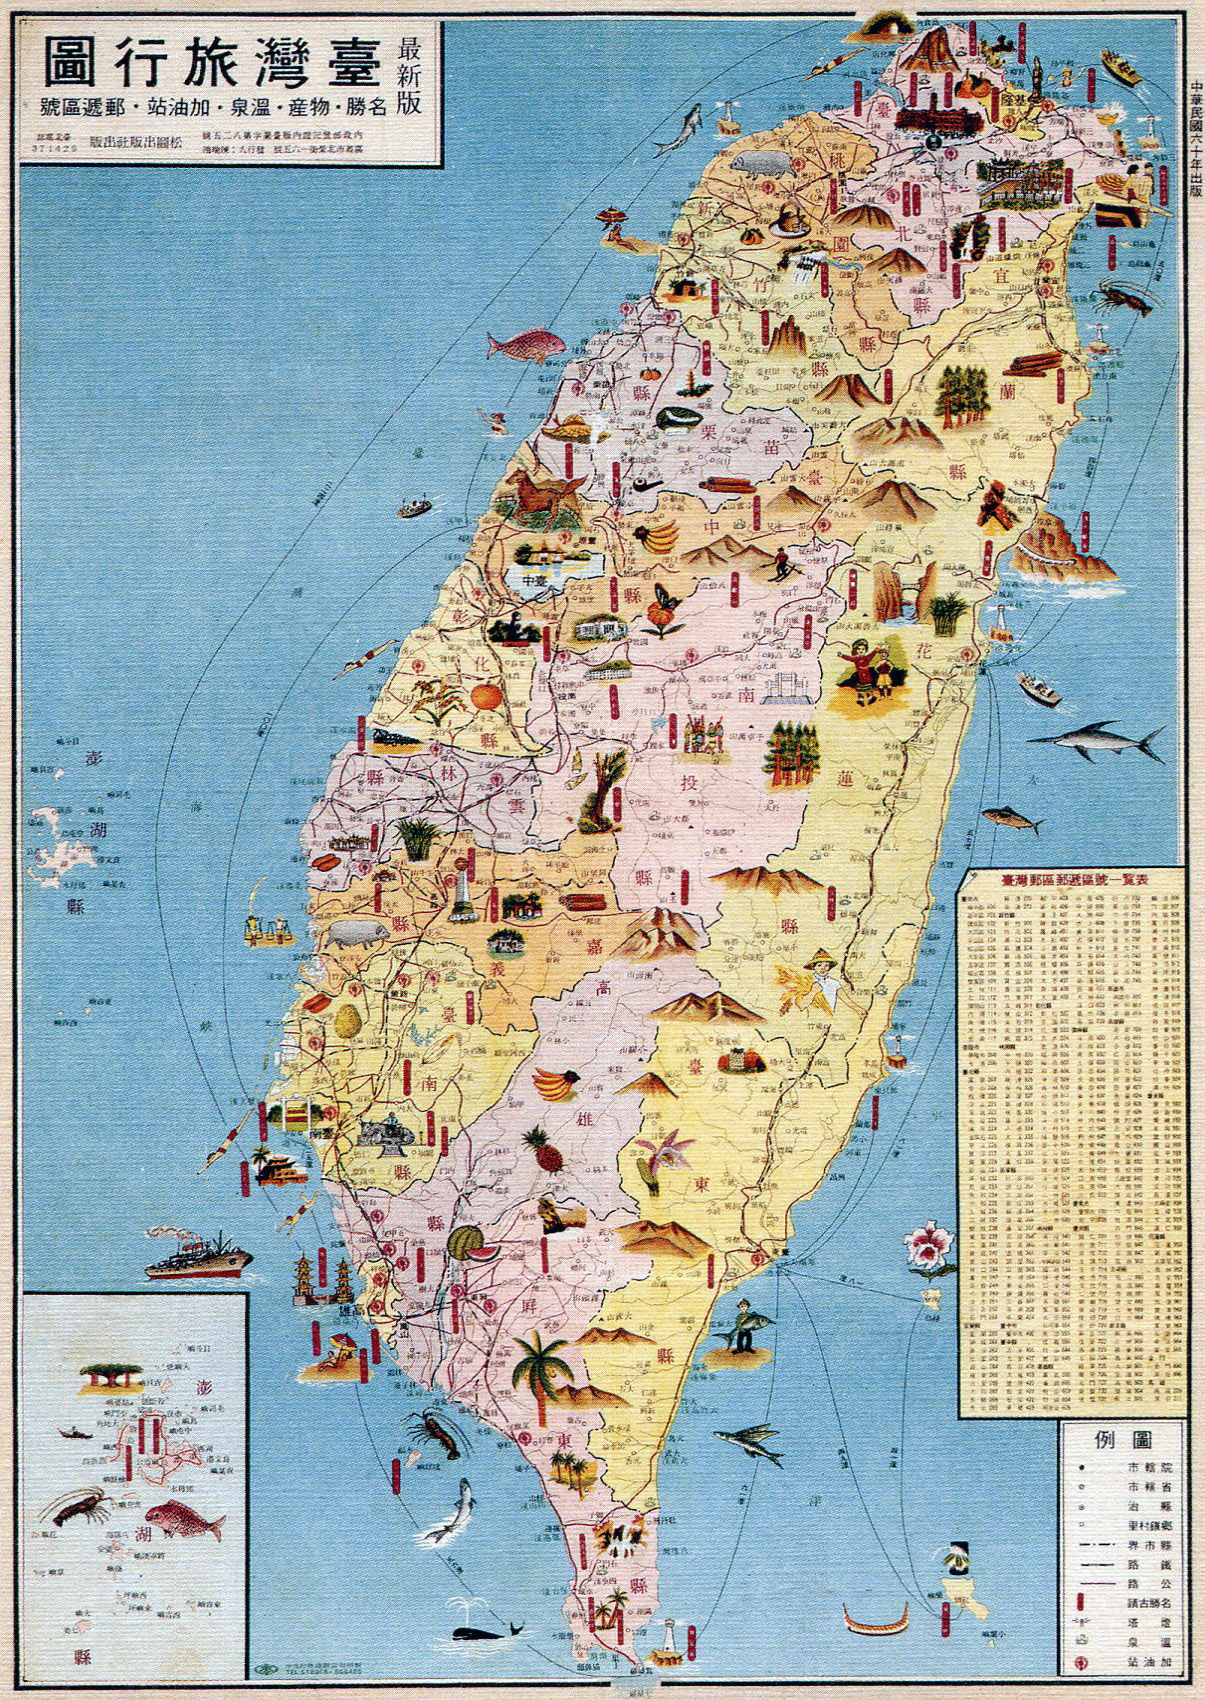 Maps of taiwan detailed map of taiwan in english tourist map detailed old illustrated map of taiwan gumiabroncs Gallery